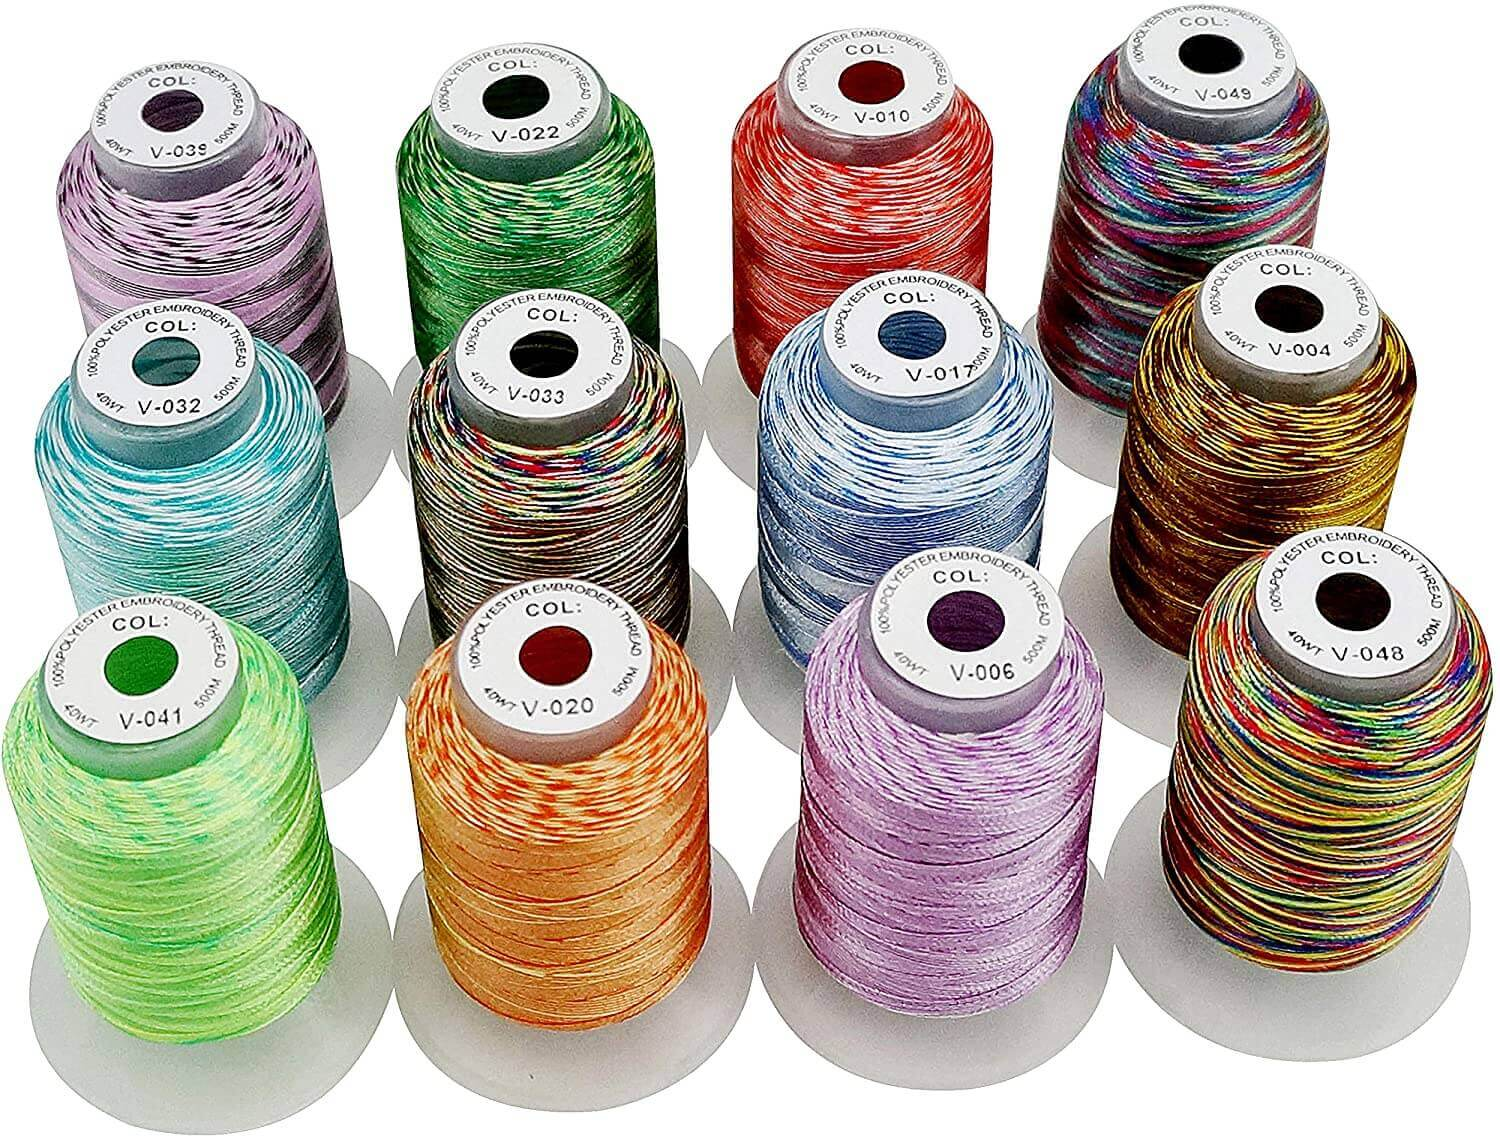 New brothread 12 Colors Variegated Polyester Machine Embroidery Thread